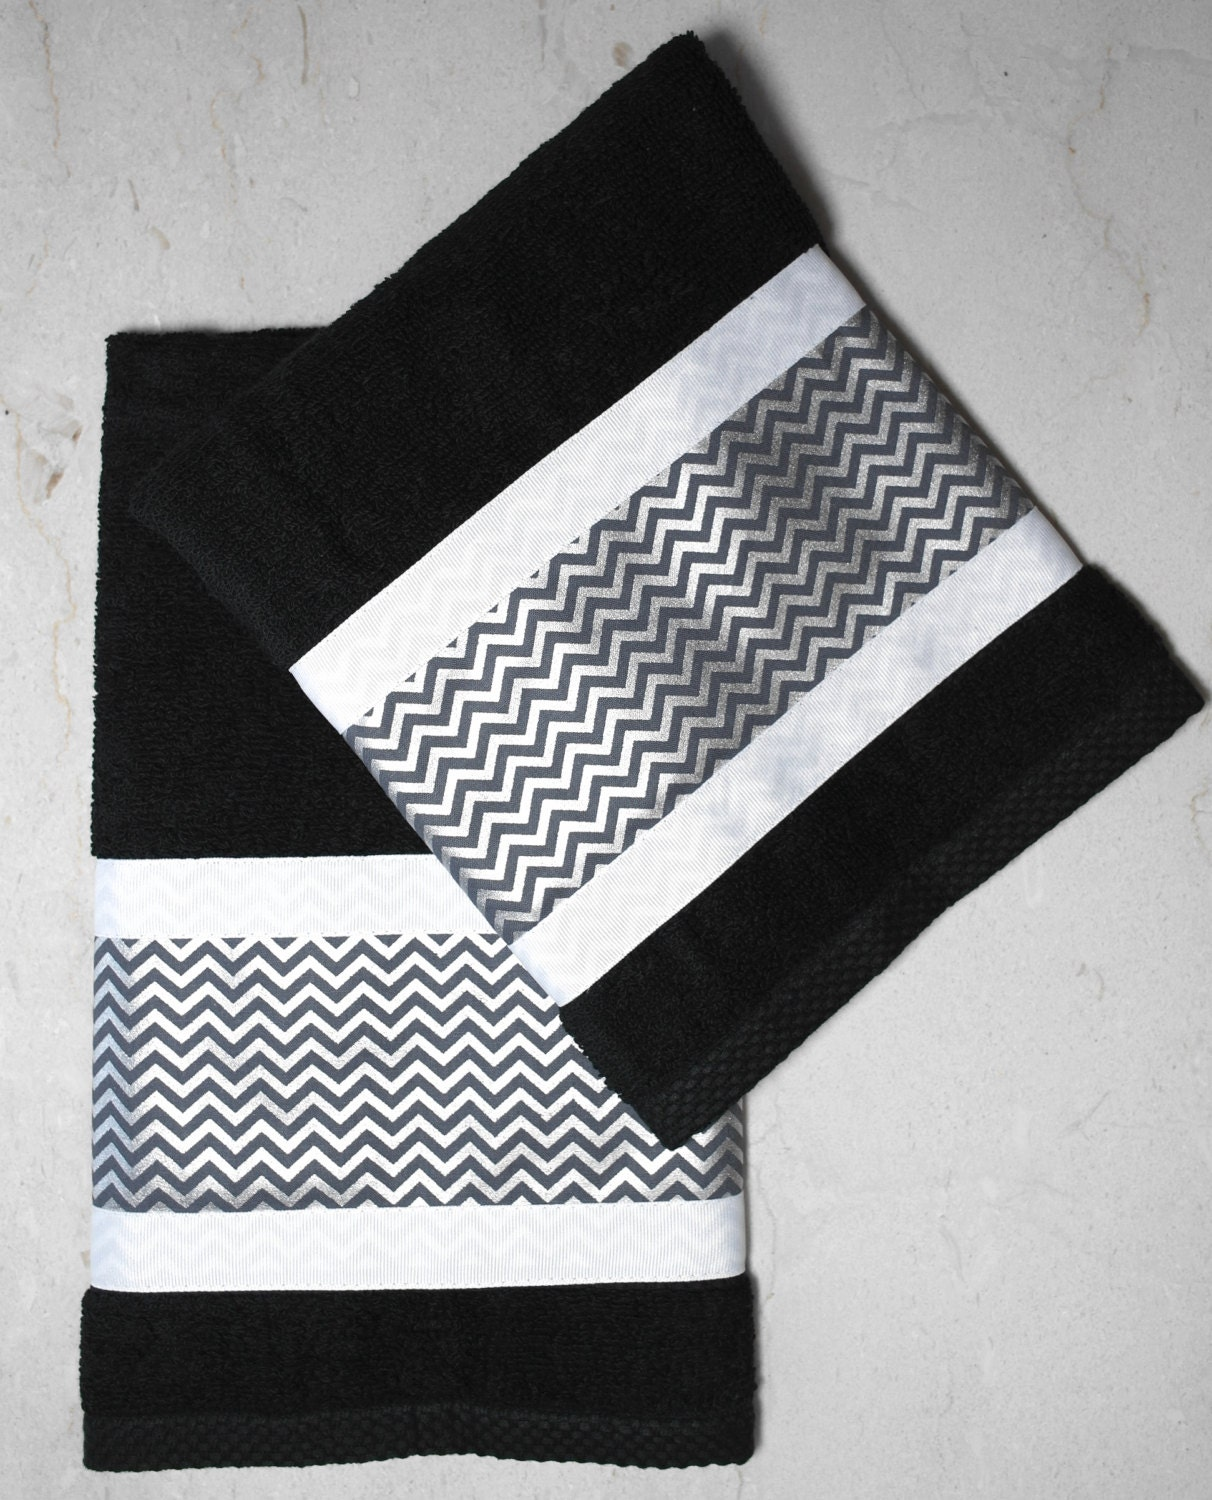 Bath Towel Sets Black And White: Custom Bathroom Collection Black 2pc Cotton Hand Towel Set